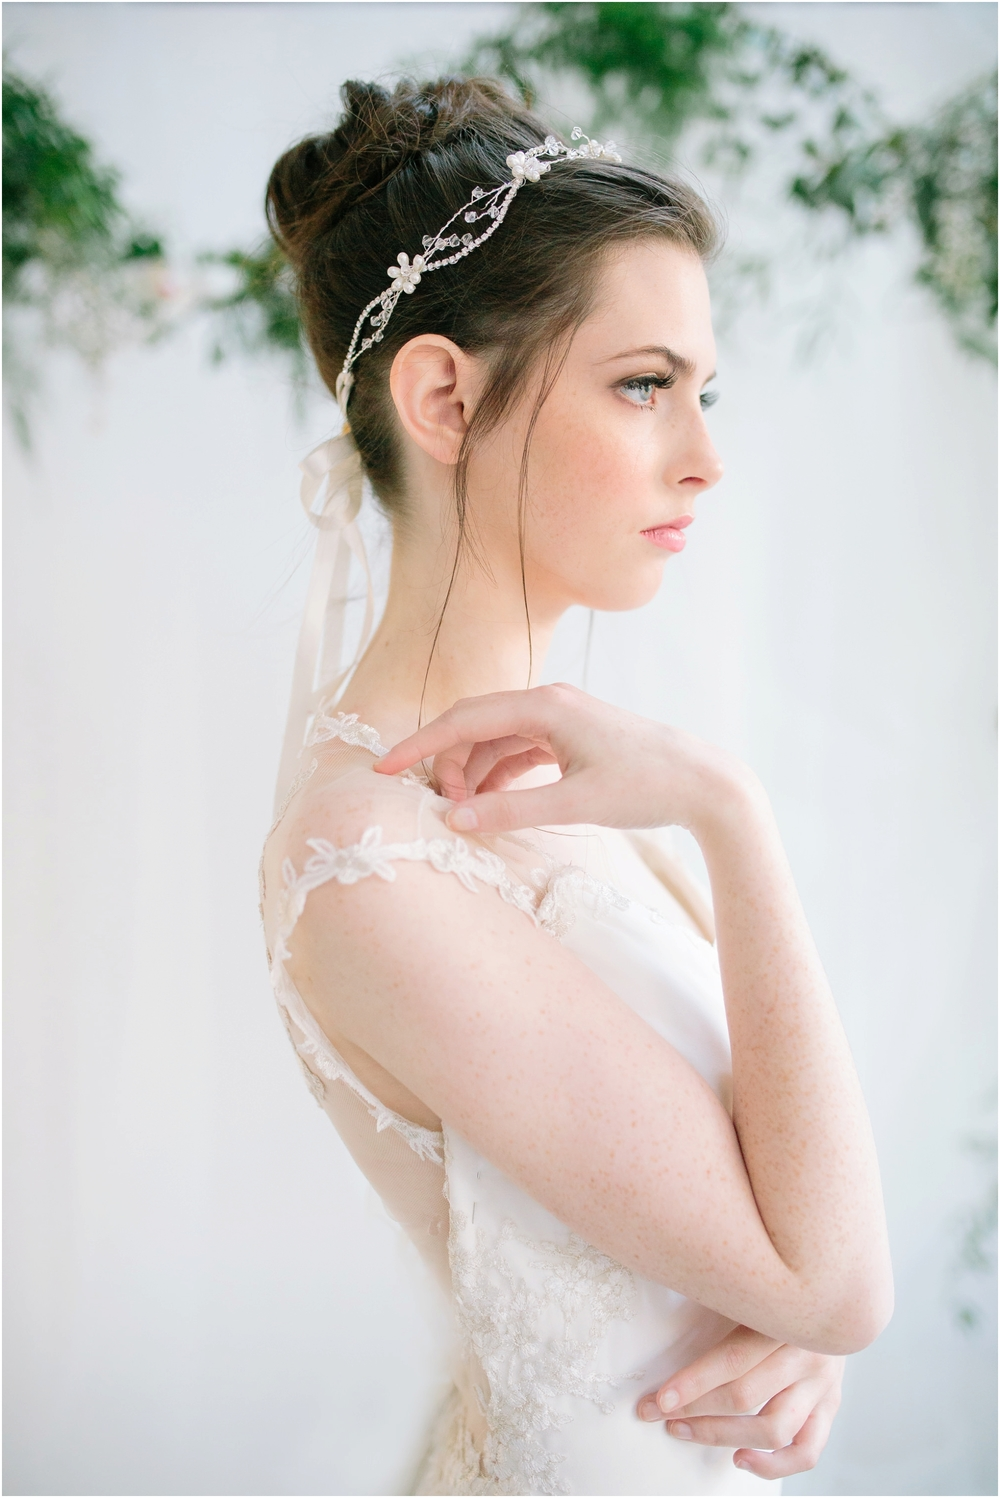 suzanne_li_photography_bridal_accessories_susan_dick_0001.jpg